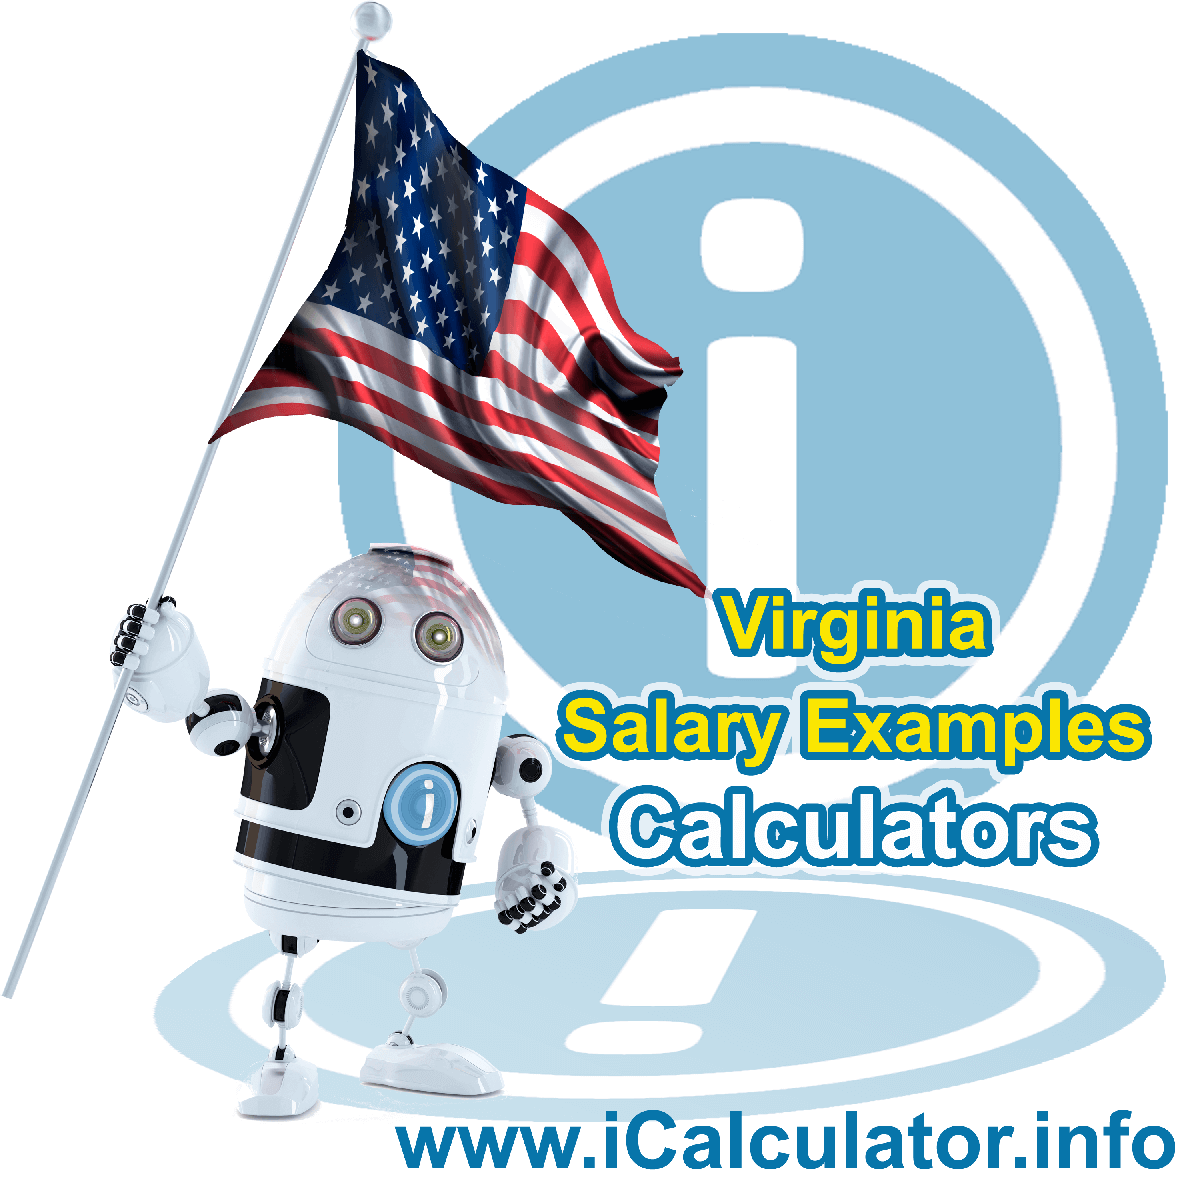 Virginia Salary Example for $210,000.00 in 2020 | iCalculator | $210,000.00 salary example for employee and employer paying Virginia State tincome taxes. Detailed salary after tax calculation including Virginia State Tax, Federal State Tax, Medicare Deductions, Social Security, Capital Gains and other income tax and salary deductions complete with supporting Virginia state tax tables